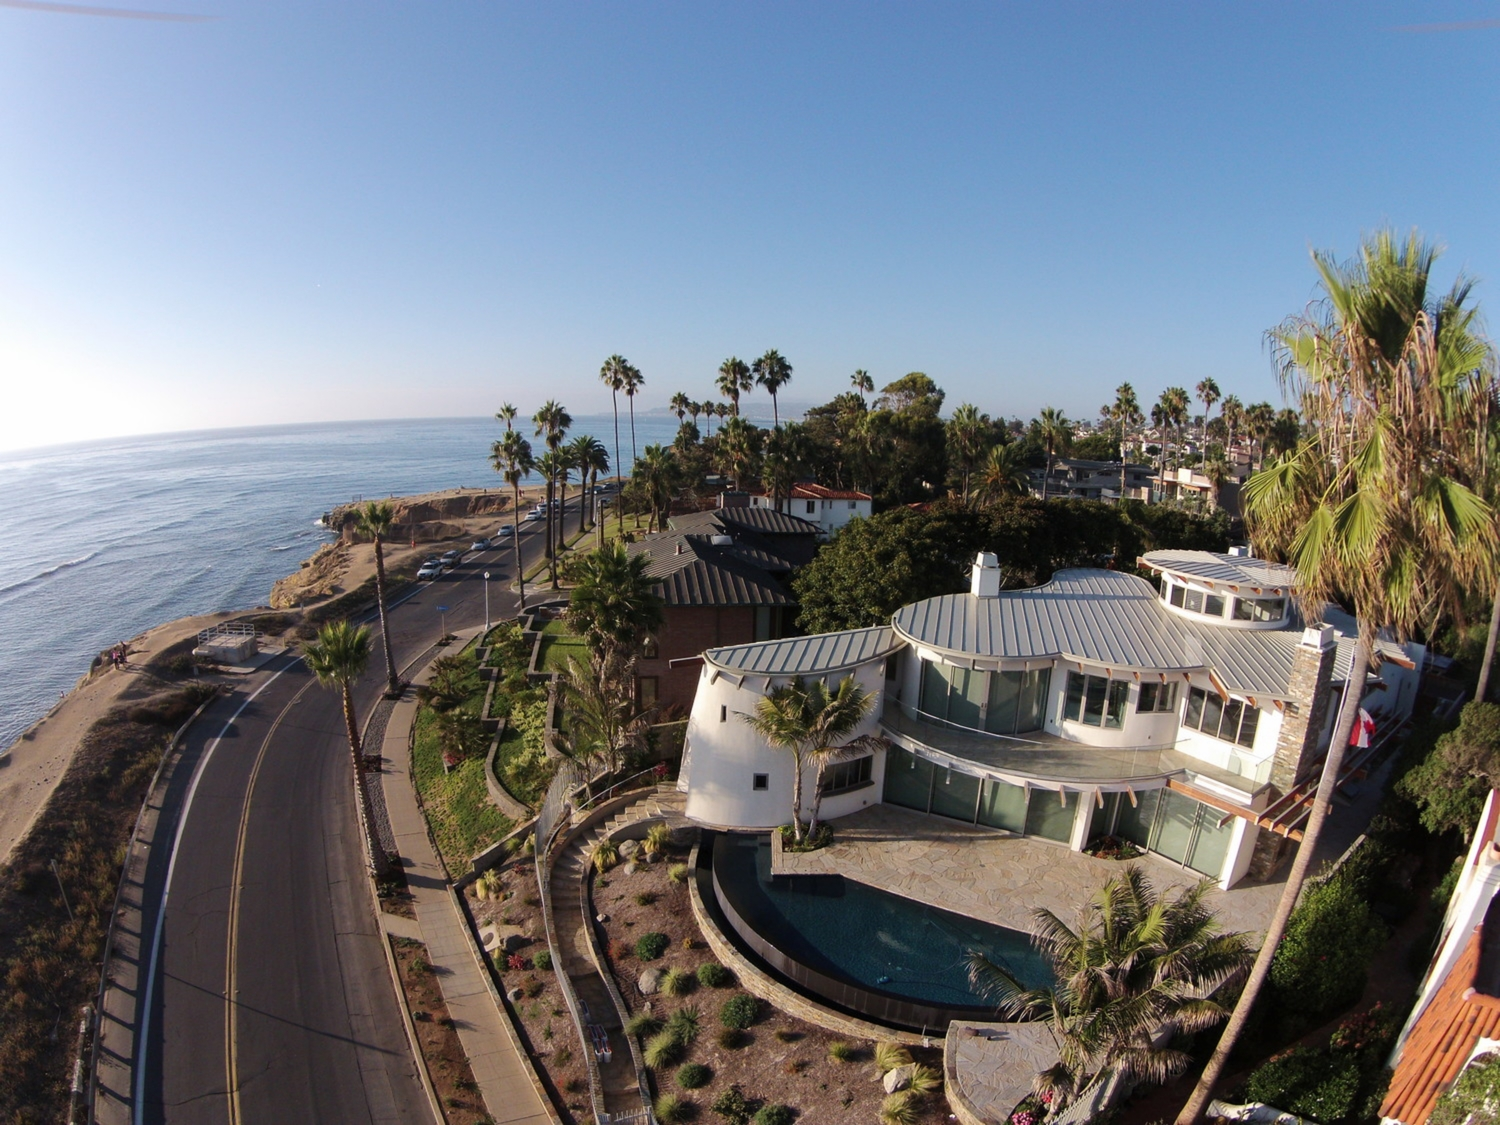 SUNSET CLIFFS, San Diego, CA - Steven Lombari Architects